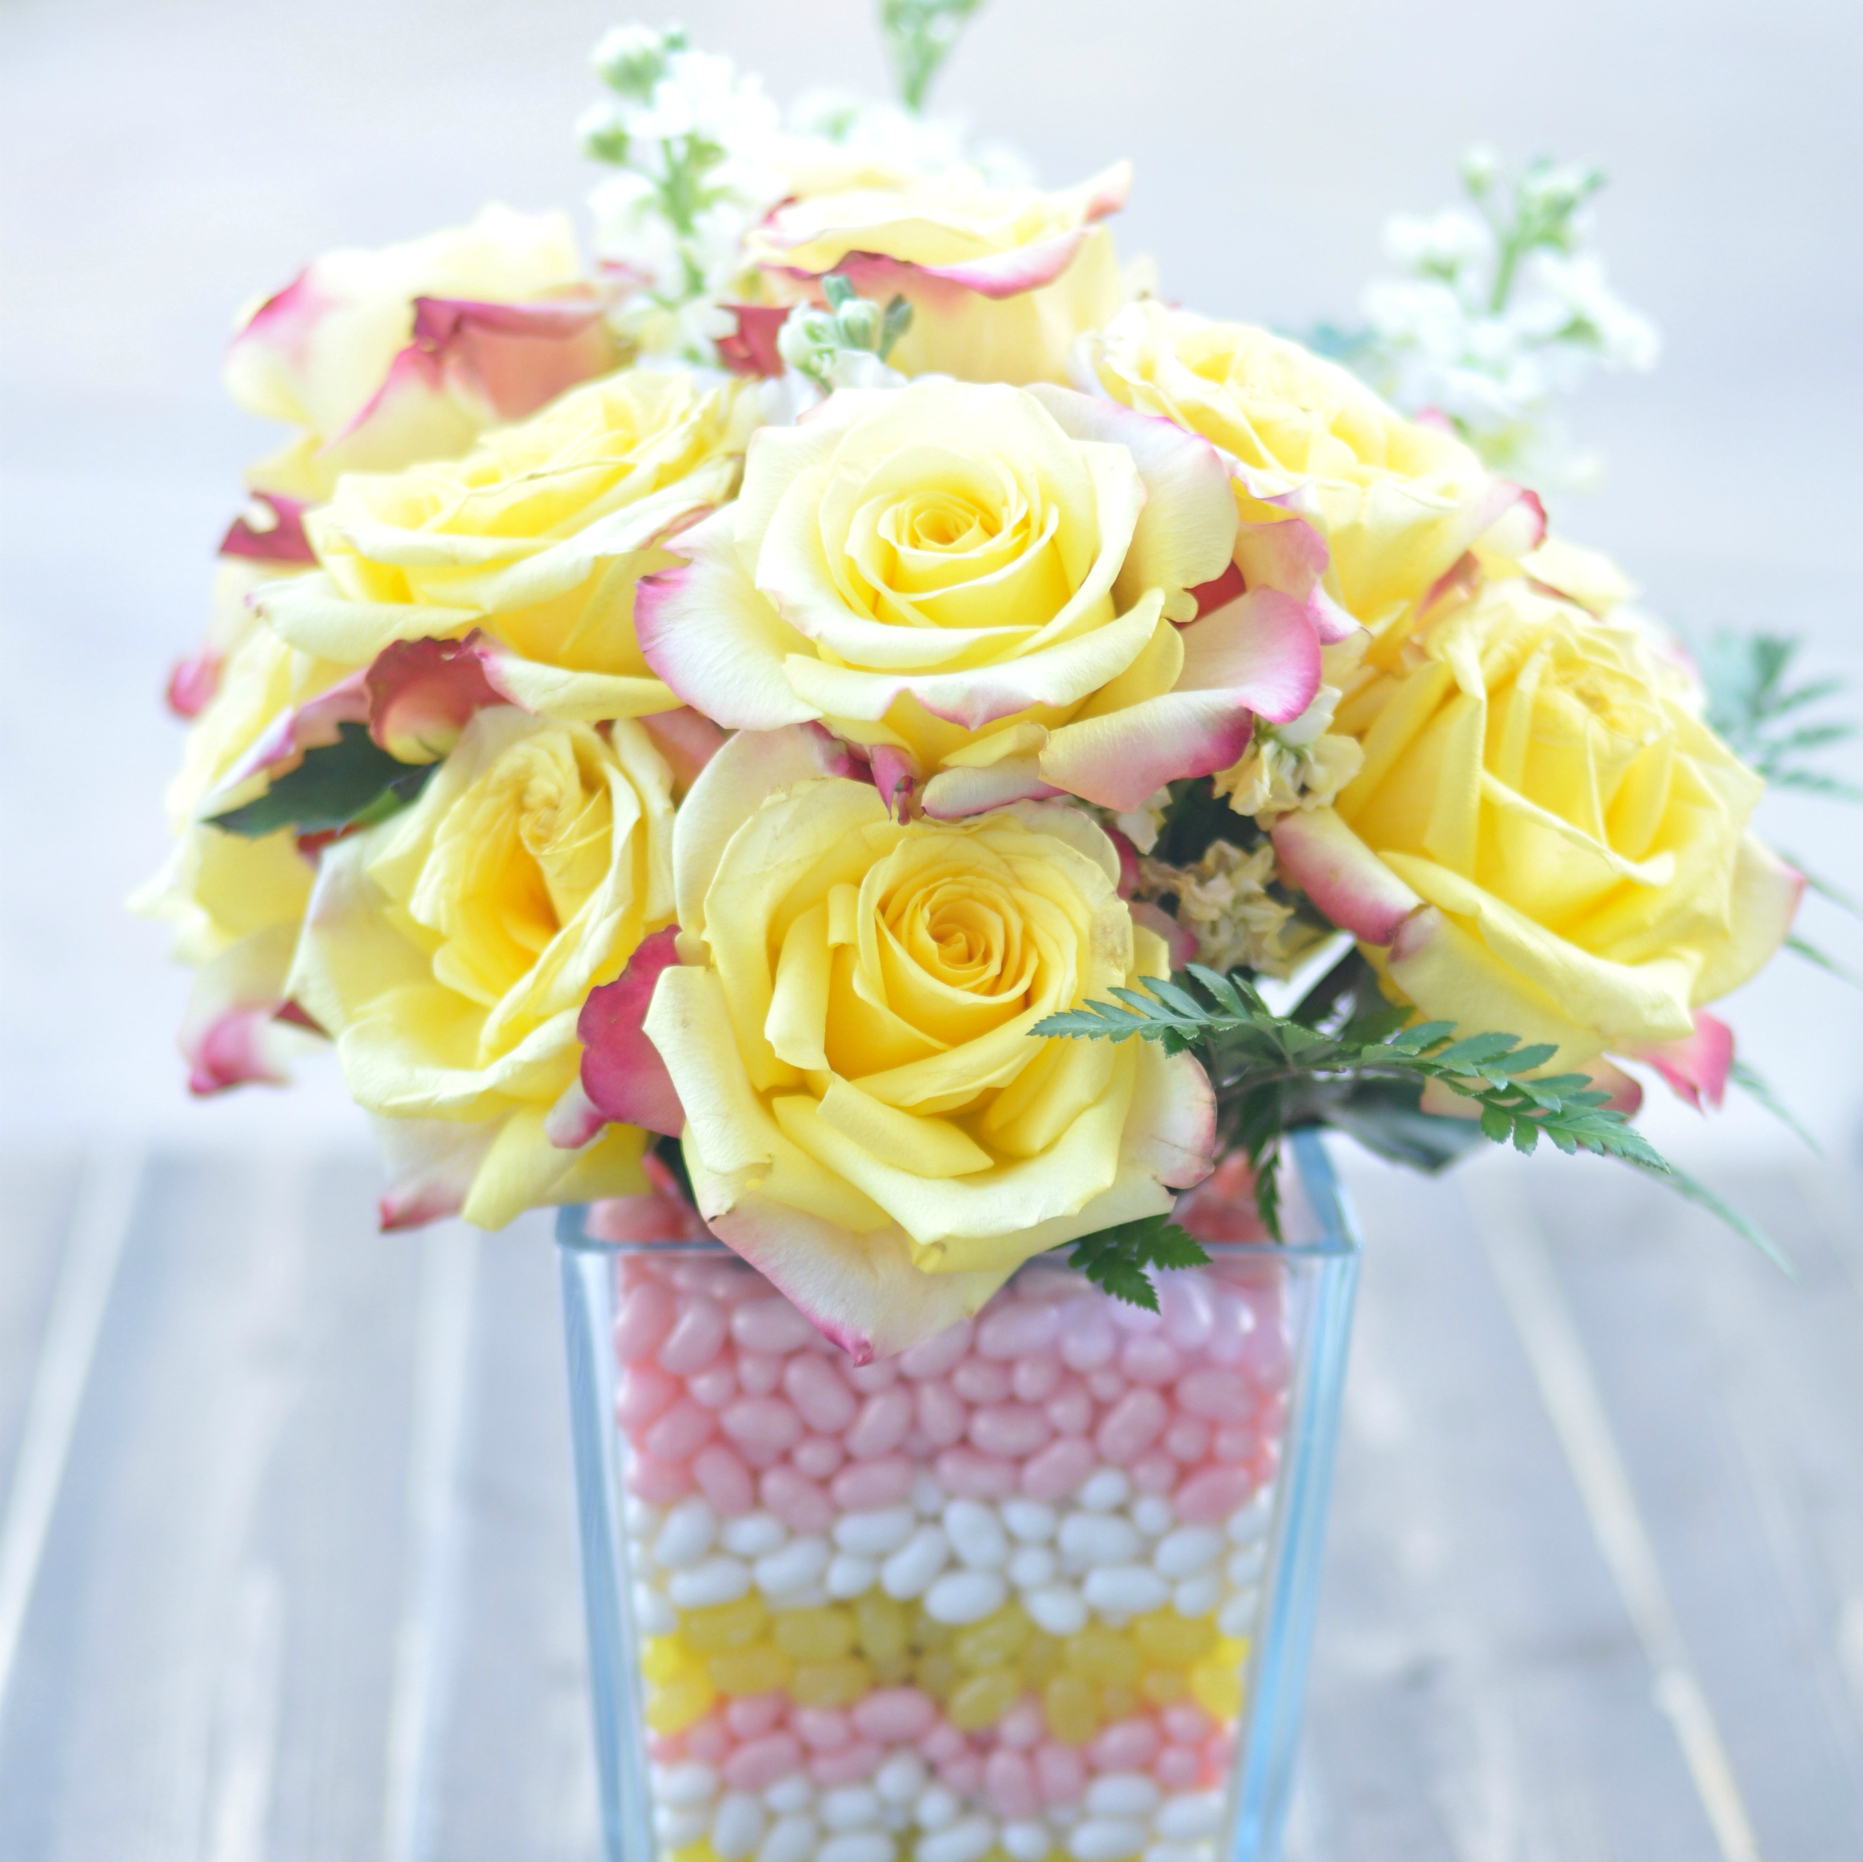 How to make a layered candy filled vase with flowers creative juice reviewsmspy